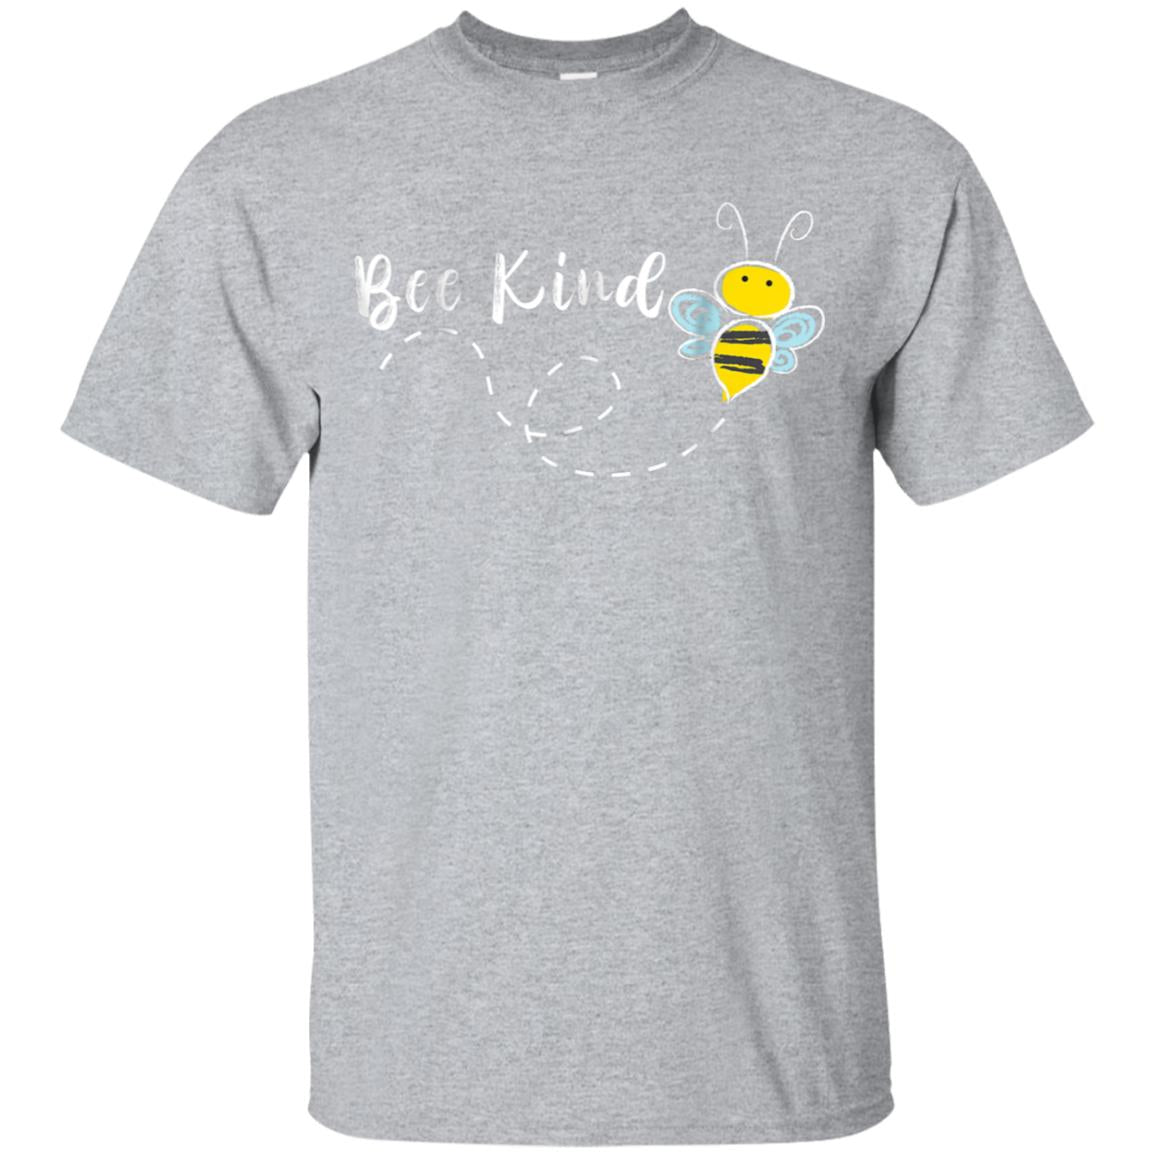 Unity Day Kindness is the New Cool Anti Bullying Tshirt 99promocode